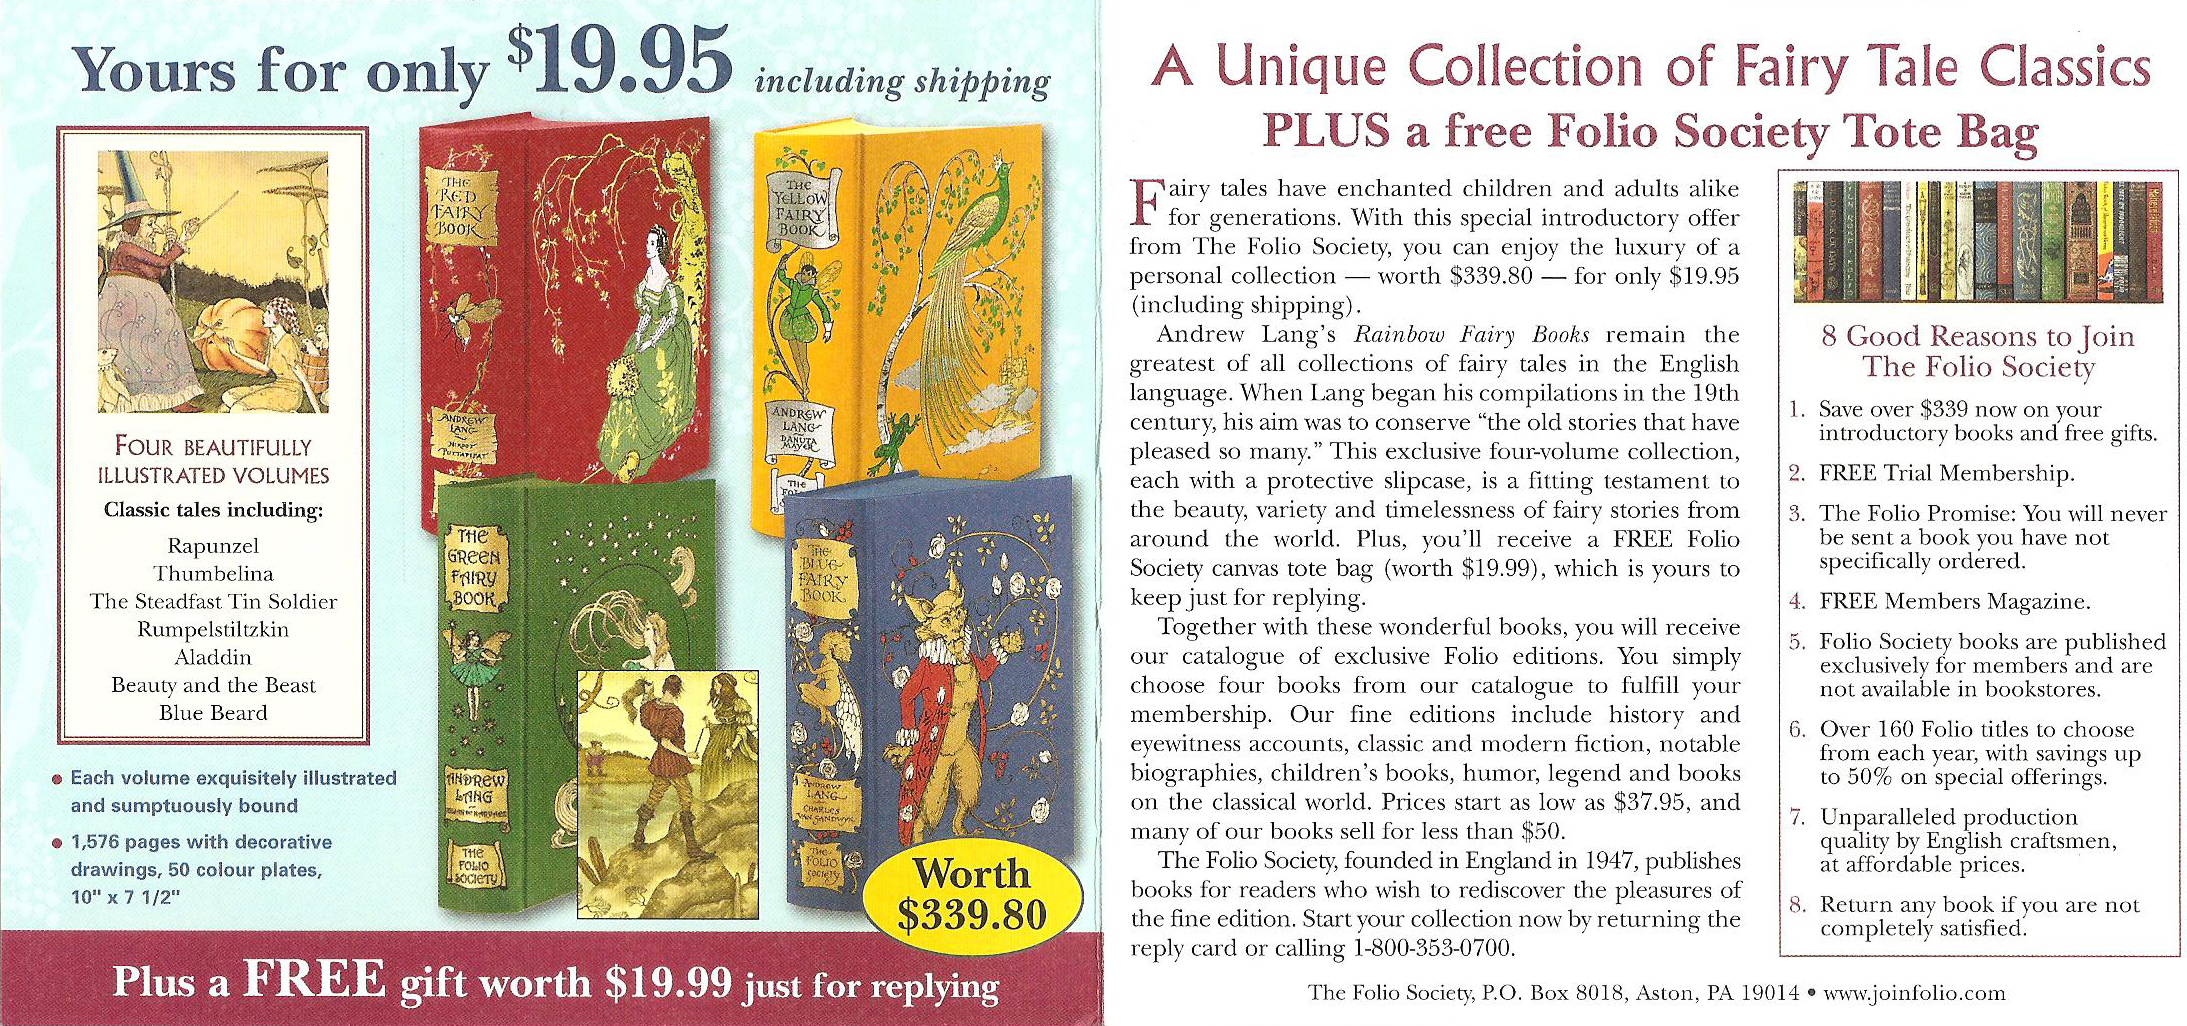 Gardener's Collection Direct Mail Offer, The Folio Society, 2012 (Creative Consultant)